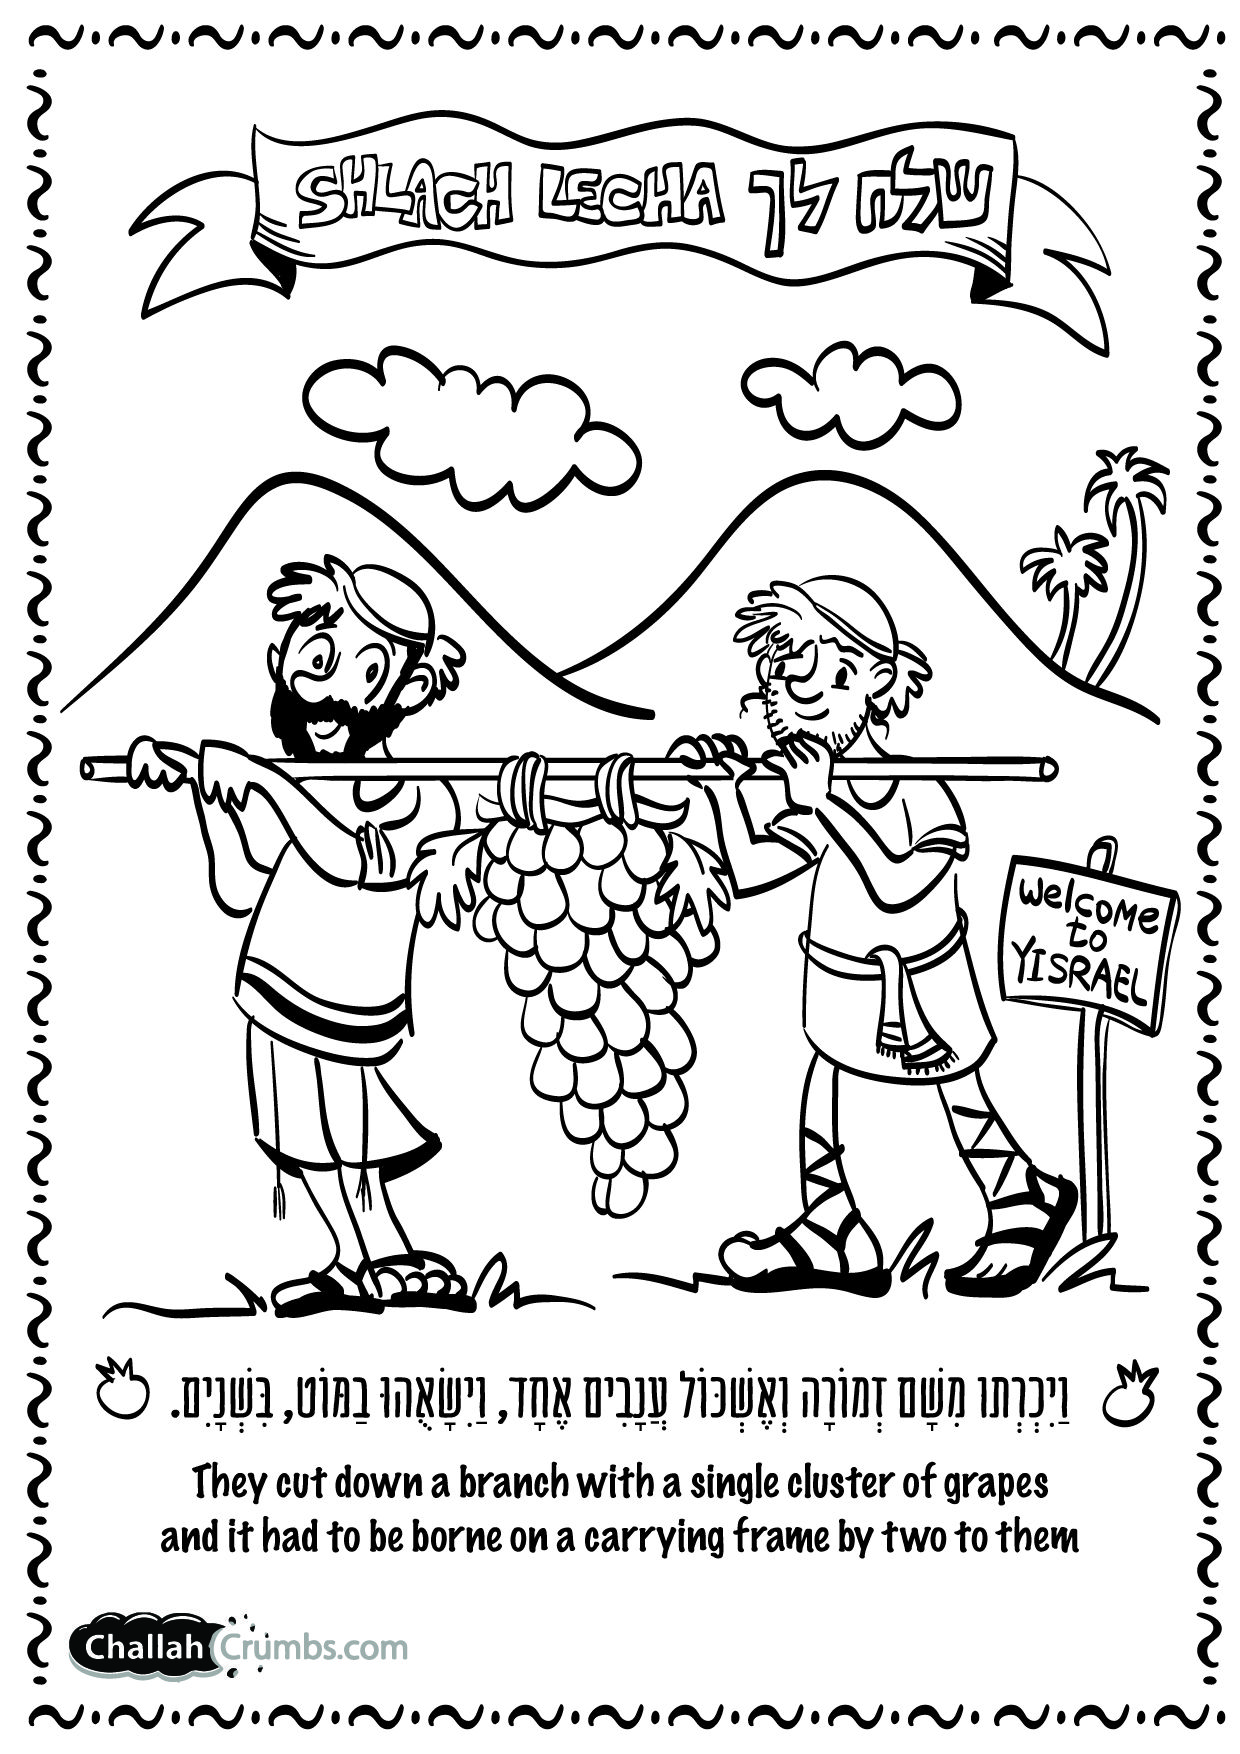 Coloring Pages Shlach Click On Picture To Print Challah Crumbs Print Pictures Coloring Pages Print